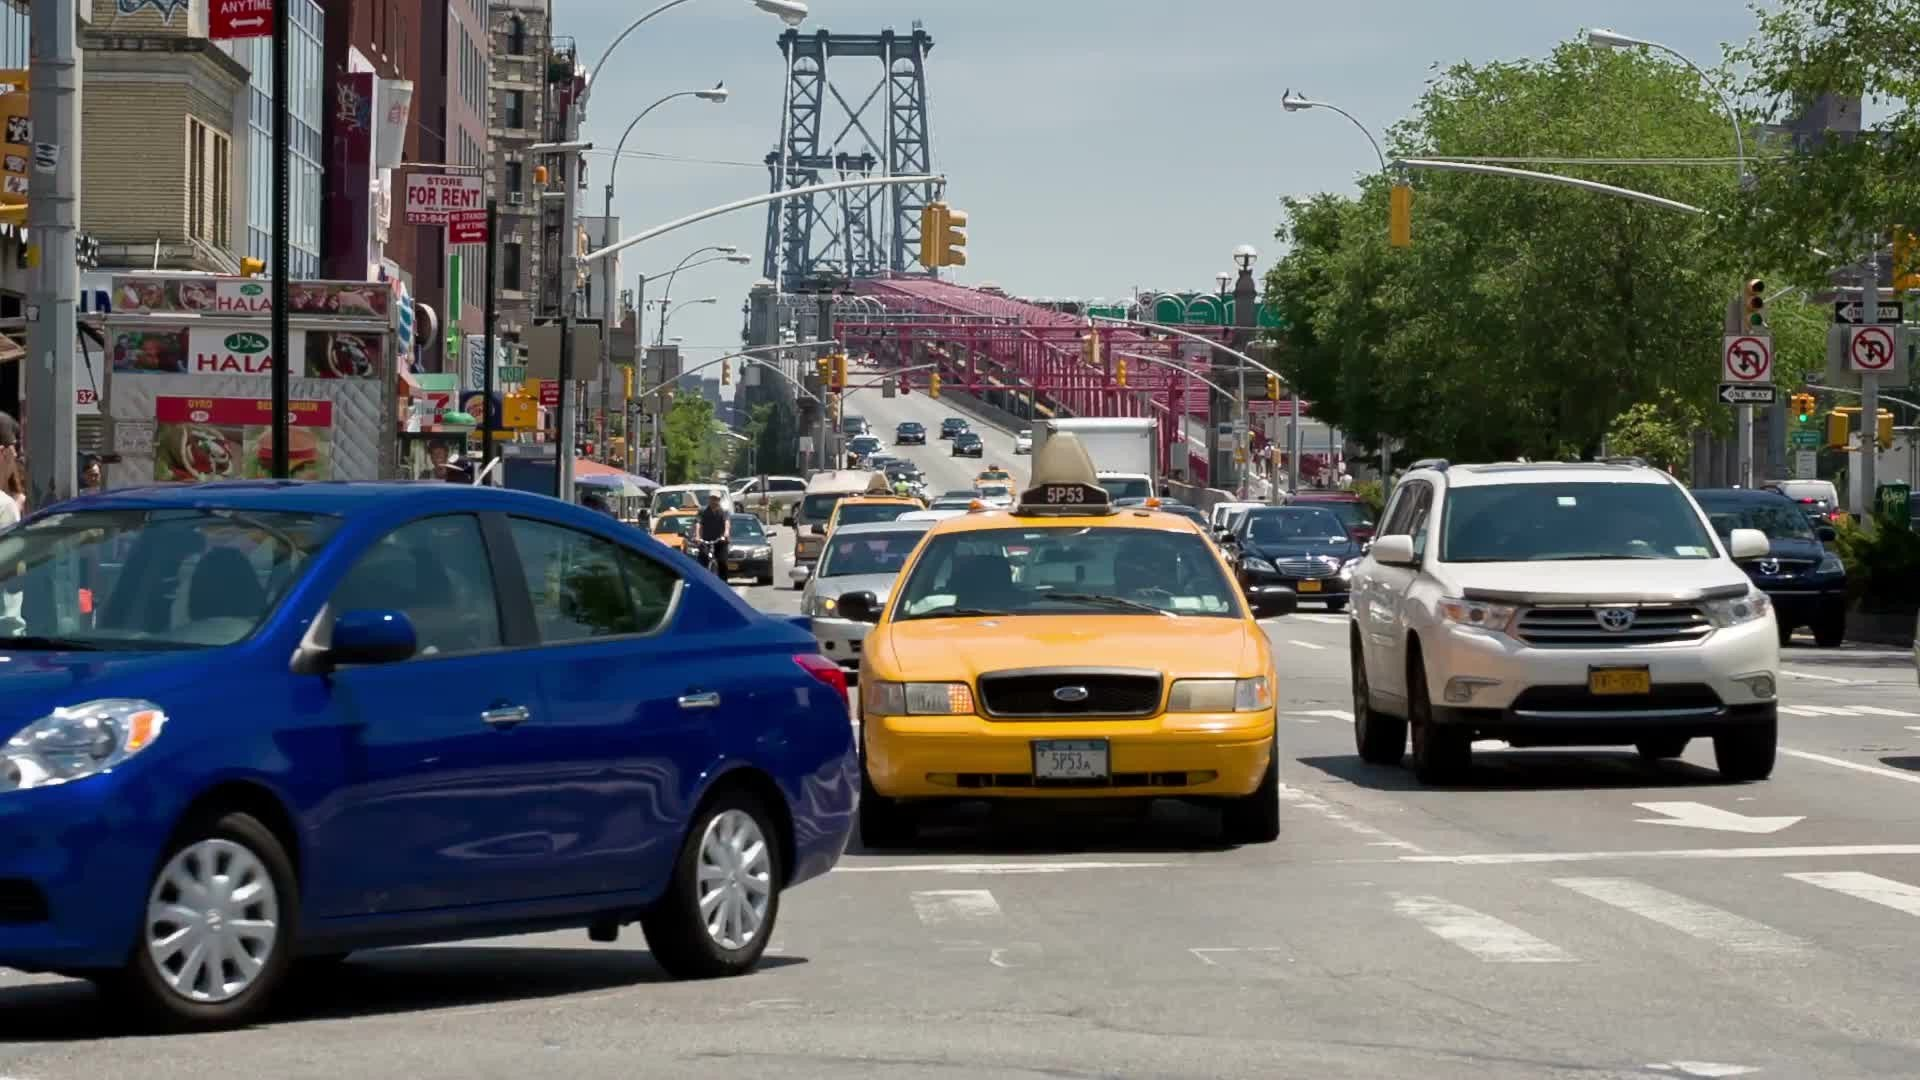 cars in traffic exiting Williamsburg Bridge in Manhattan's Lower East Side on summer day